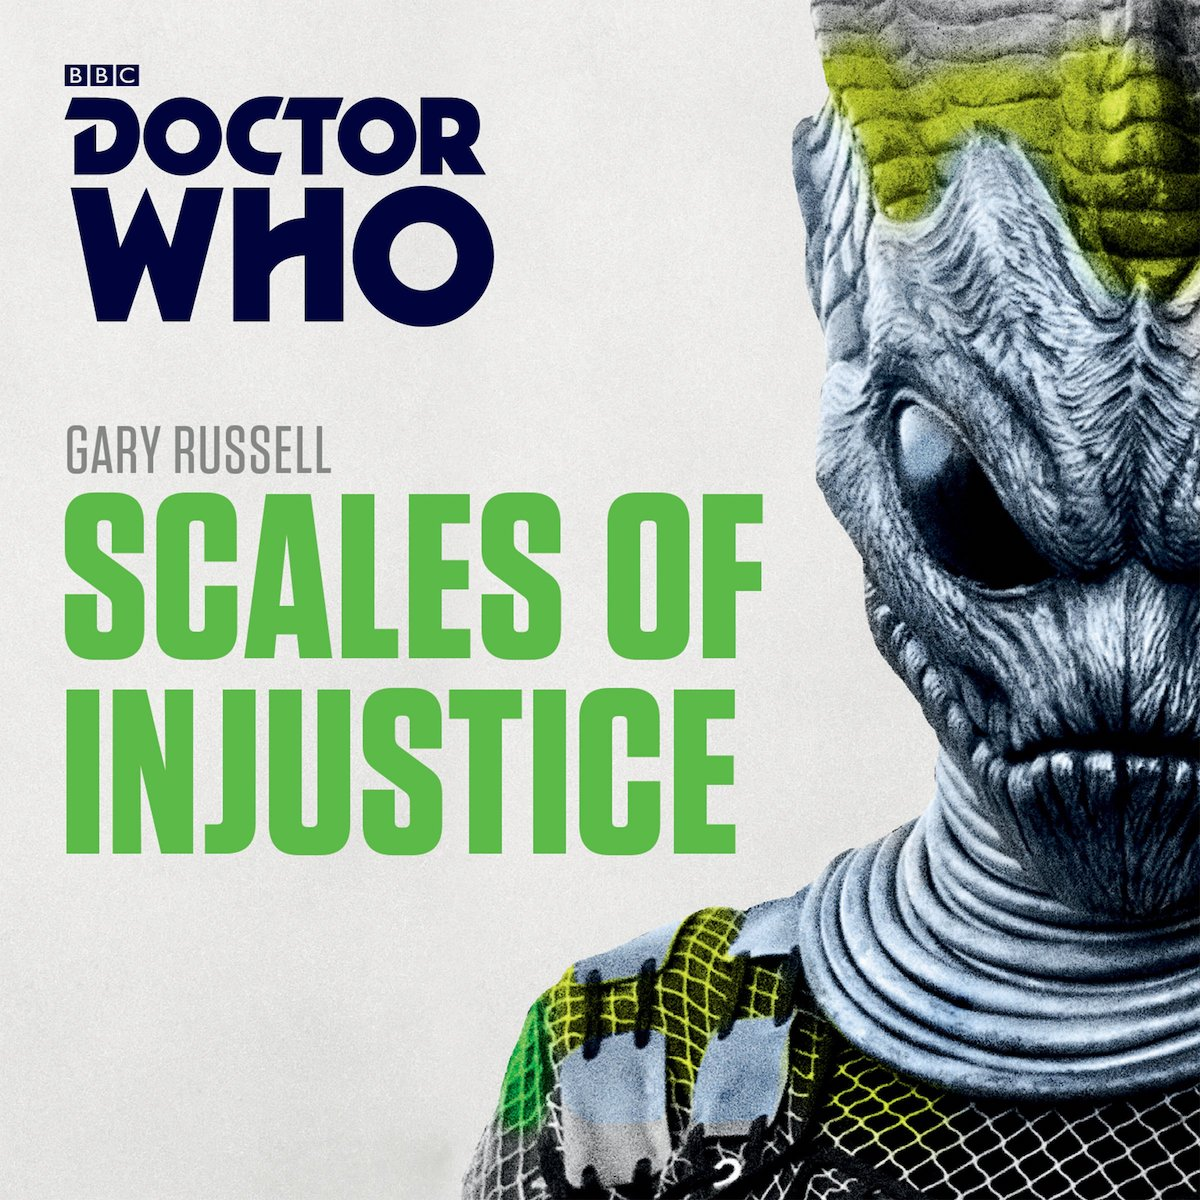 The Scales of Injustice